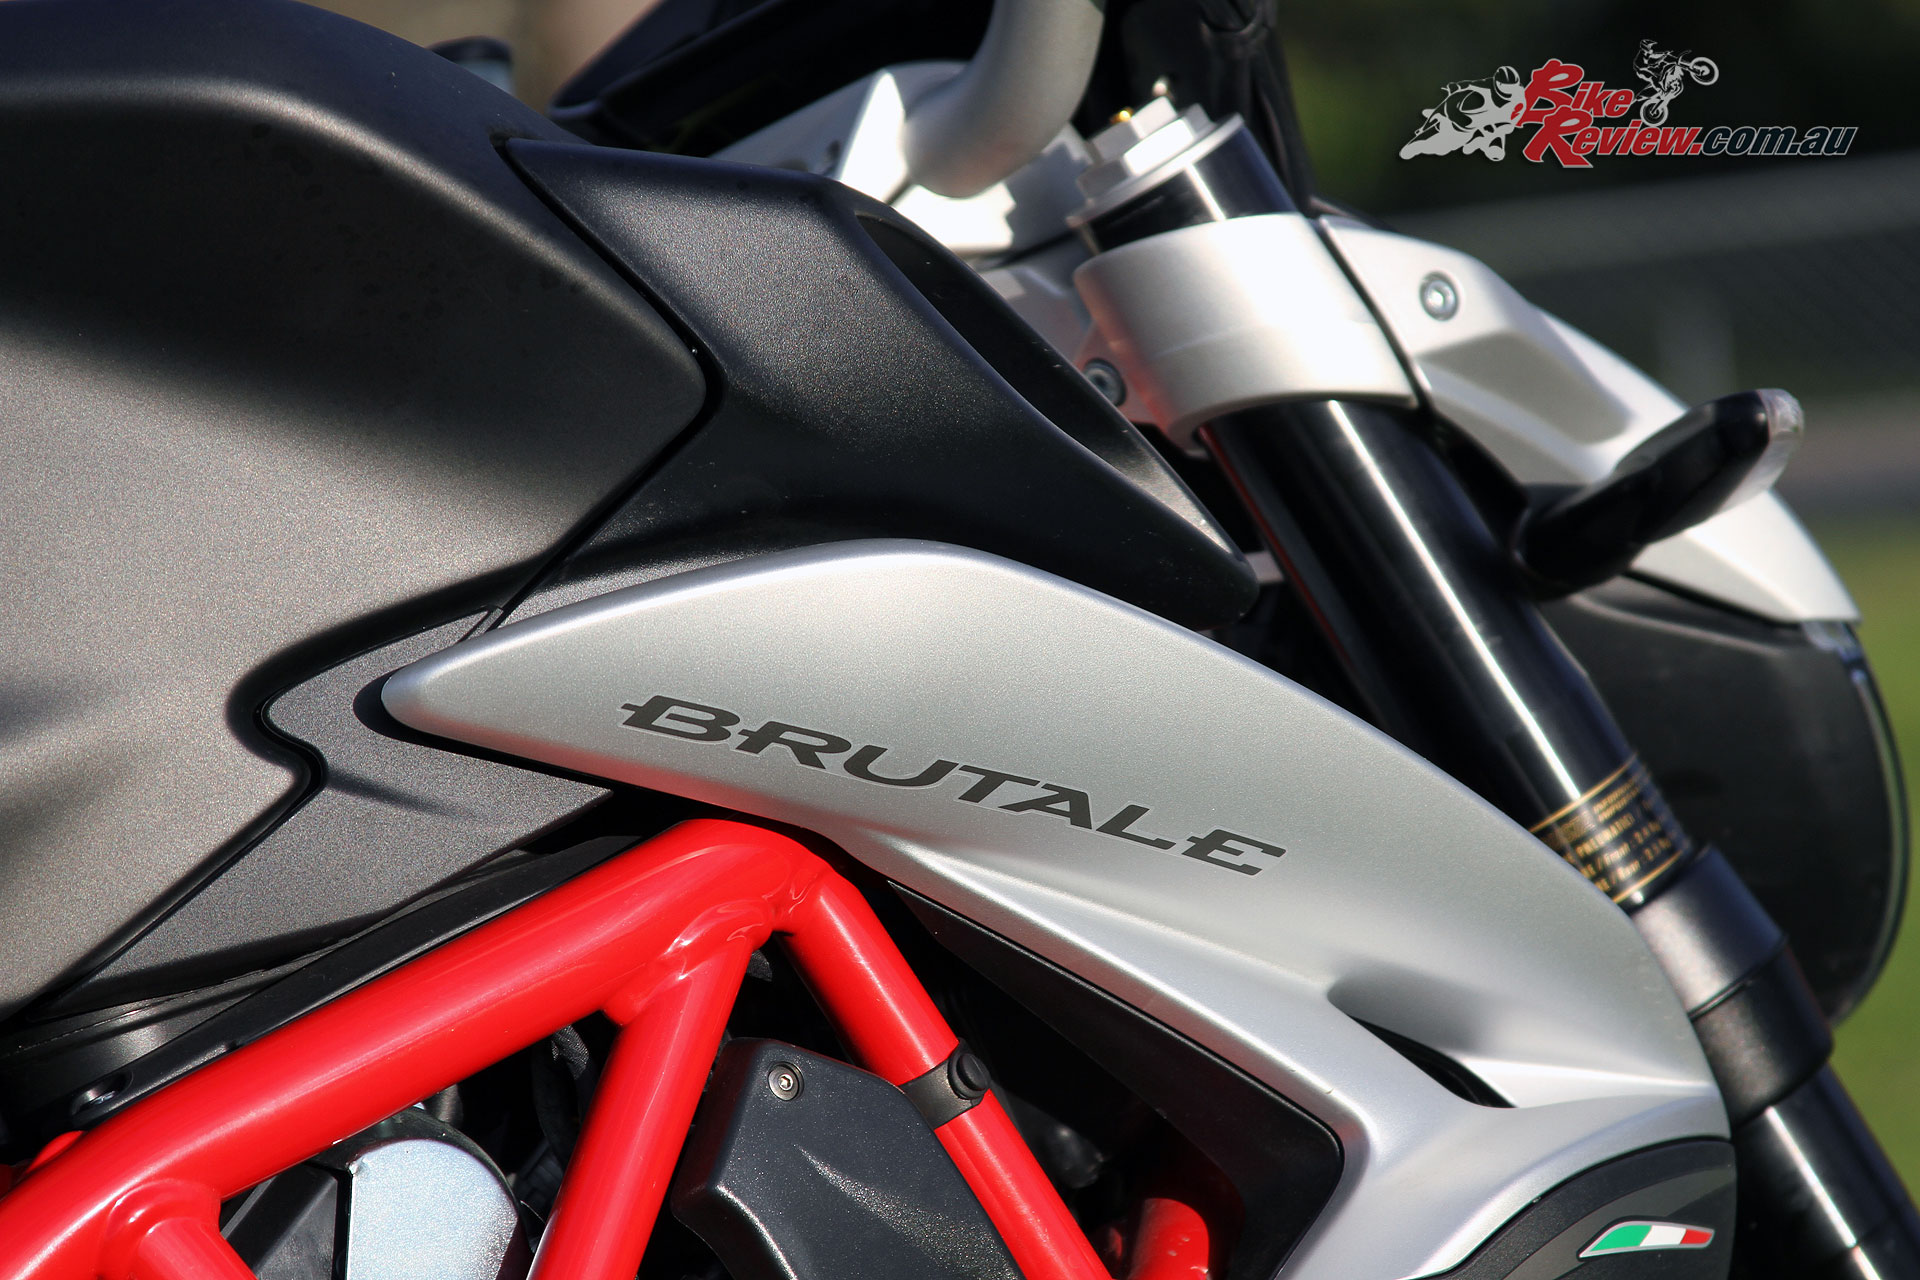 The Brutale is iconically MV Agusta and well worth investigating